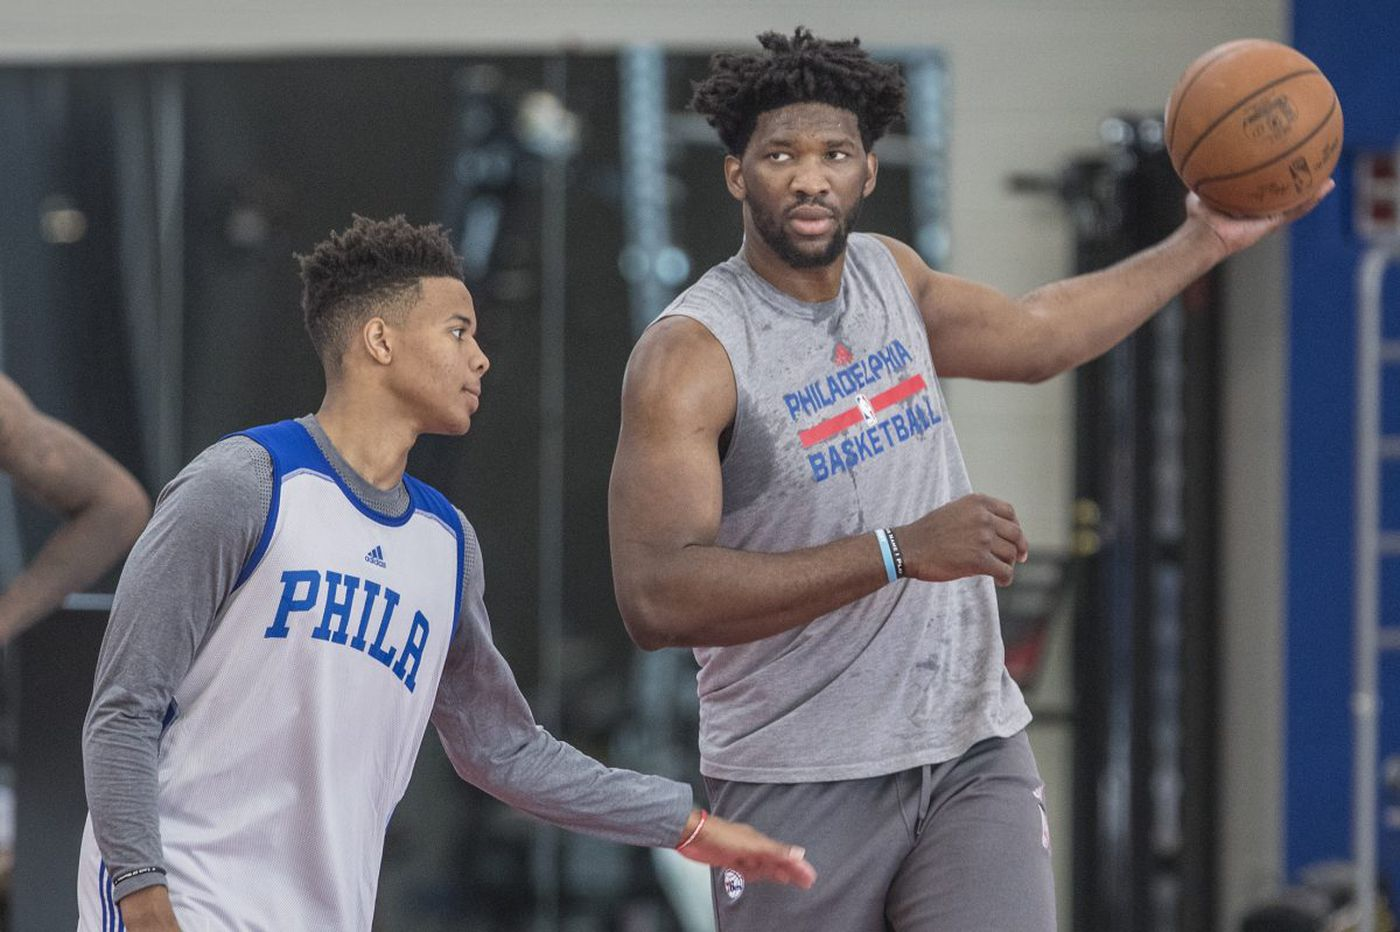 Markelle Fultz's physical maturation will be another process to watch   David Murphy